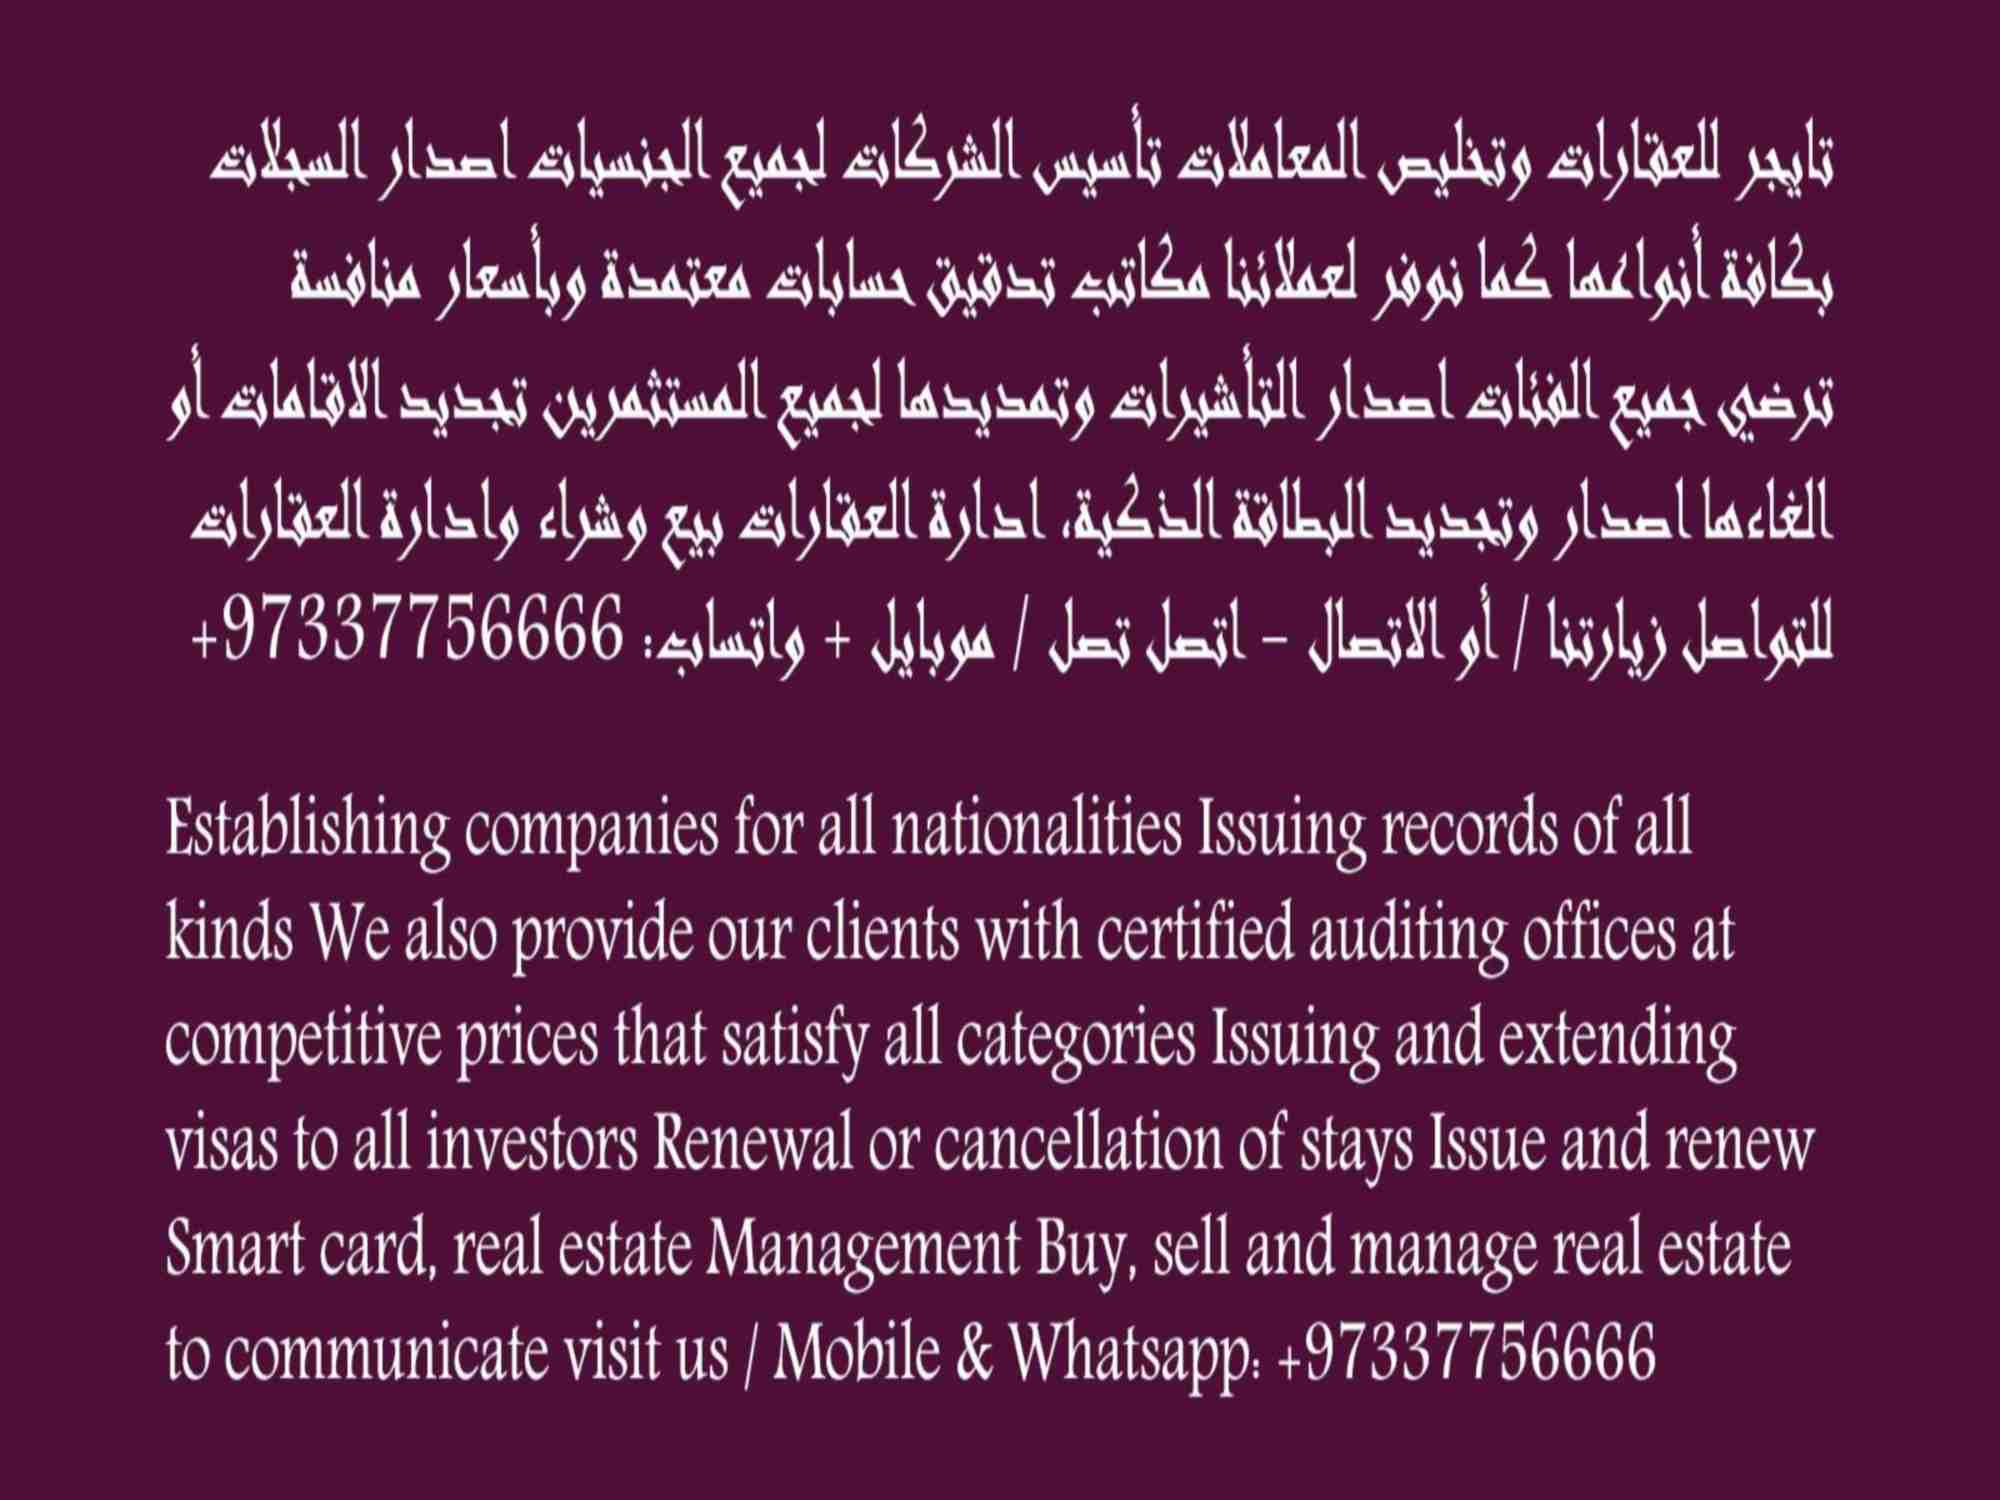 Do you need Finance? Are you looking for Finance? Are you looking for finance to enlarge your business? We help individuals and companies to obtain finance for -  تأسيس شركات لجميع...